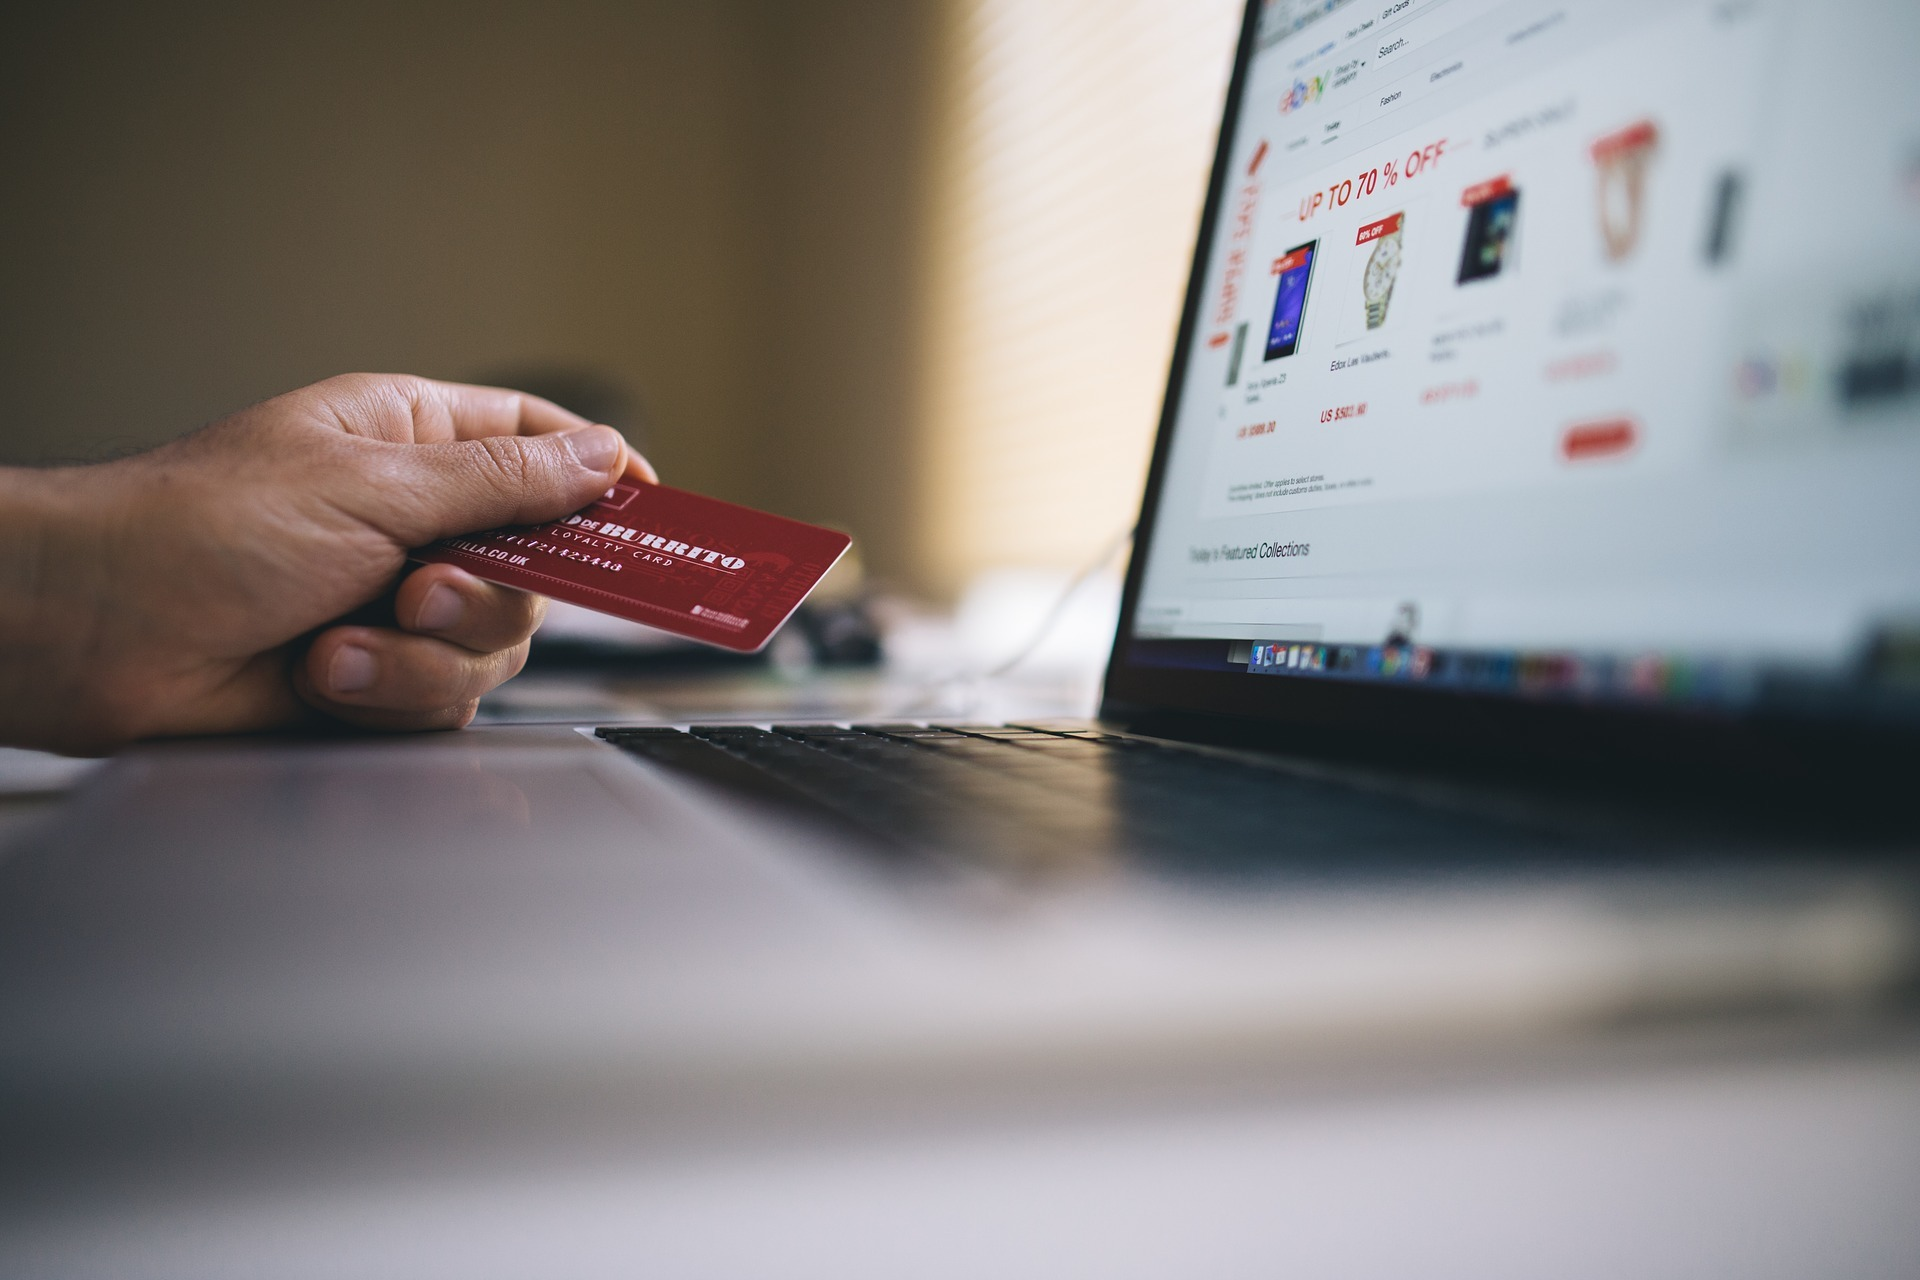 ebay top rated seller requirements benefits discounts